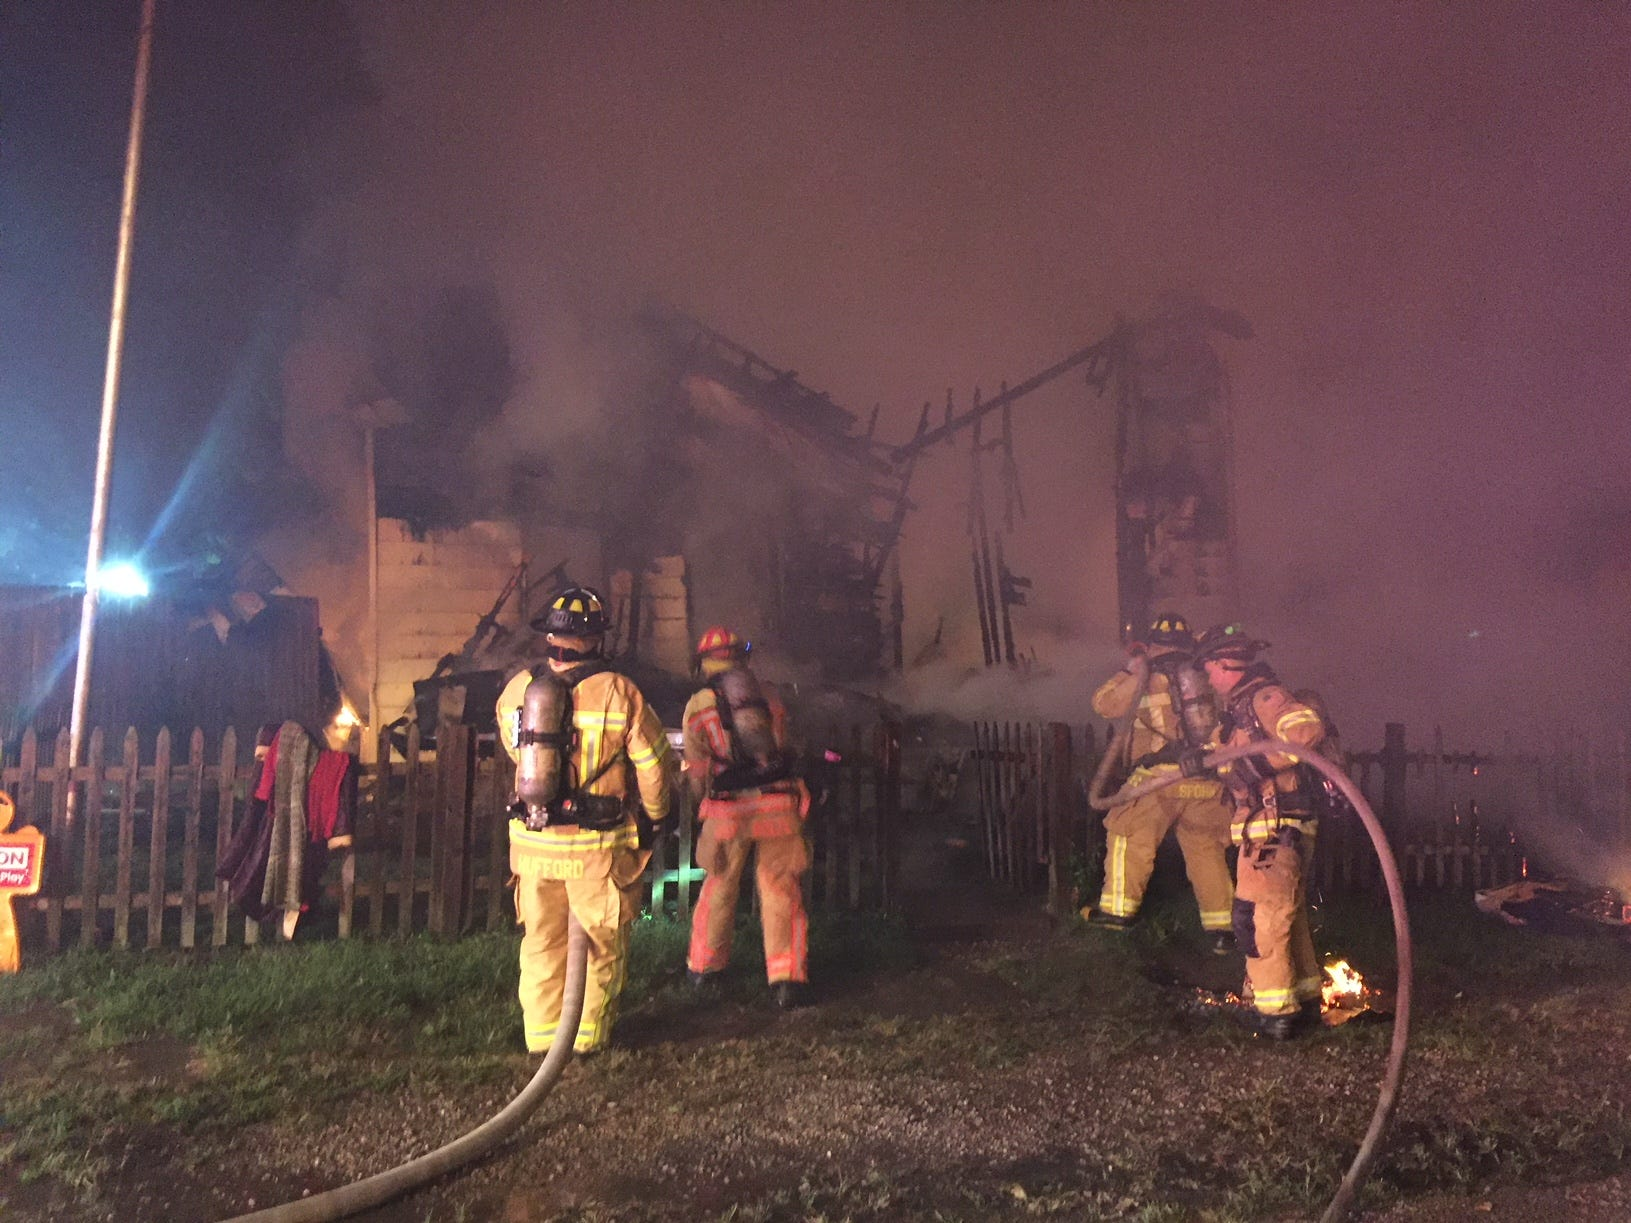 Firefighters battle a blaze at 176 E. Channel St. early Thursday morning. A body was found at the site.